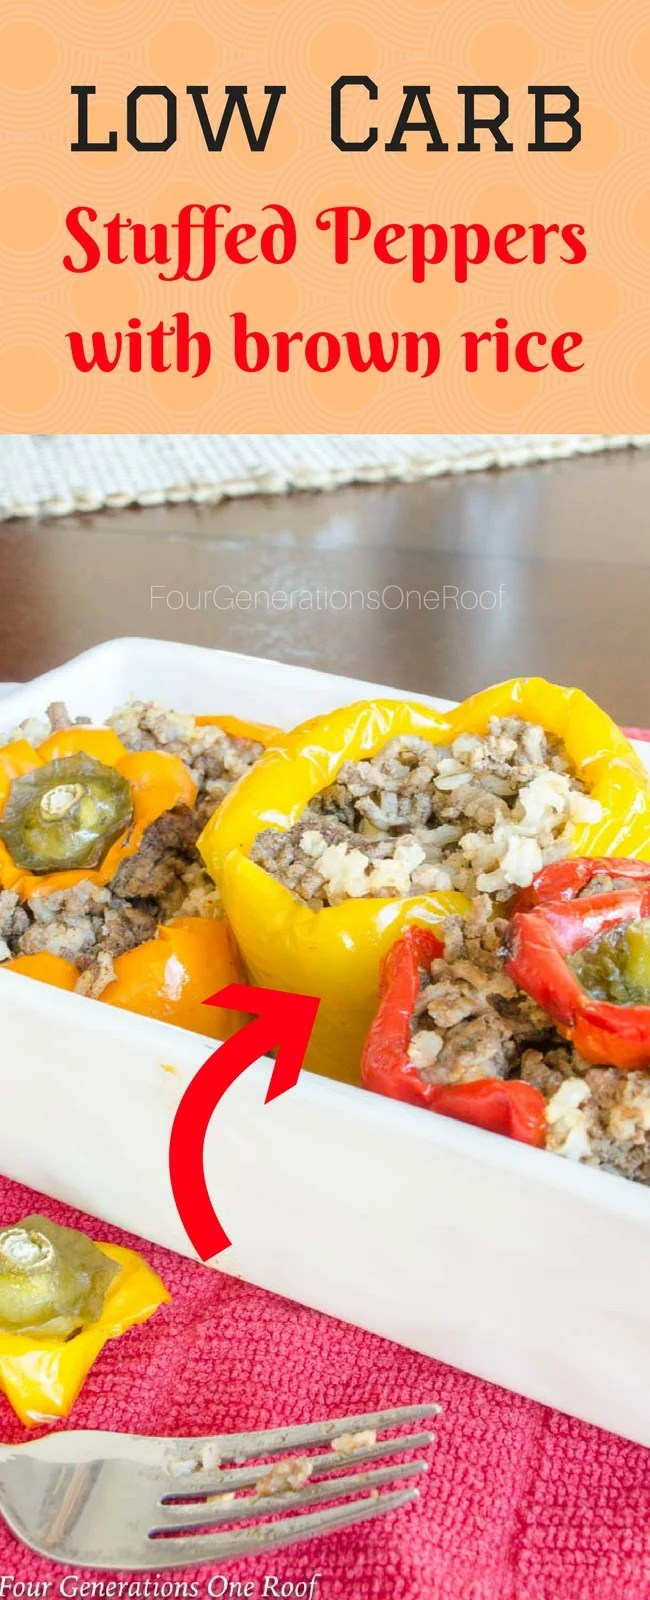 how to make fast low carb stuffed peppers with brown rice. Bell Peppers work perfectly but green peppers are also ok to use. This is a perfect meal idea for during the week when you are on the go and also great as leftovers the next day for lunch! #leftovers #stuffedpeppers #bellpeppers #mealidea #weeklymealplanner #weekdaymeal #cookinglight #lowcarb #diabeticrecipe #lowcarbmeal